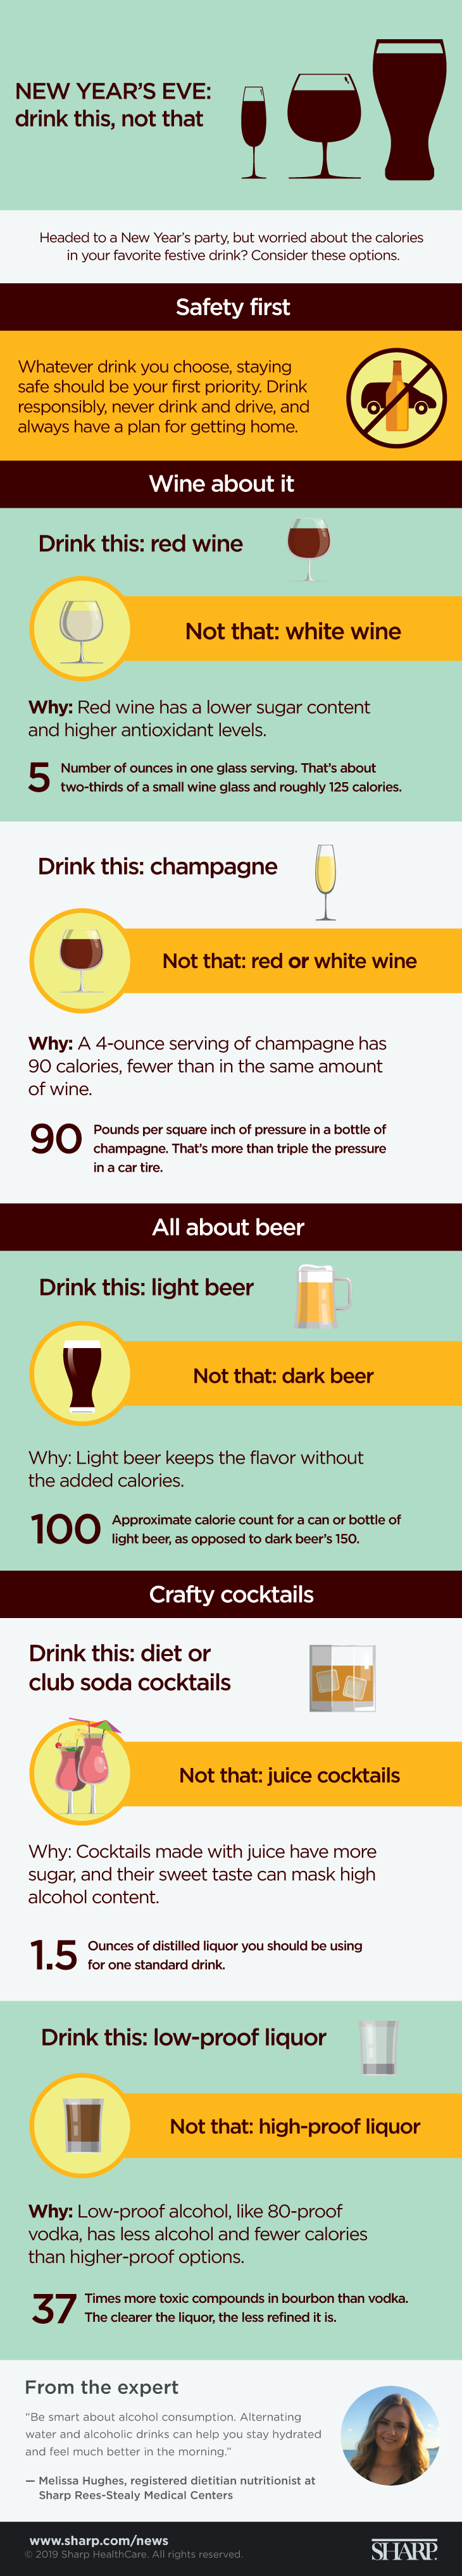 New Year's Drinks Infographic UPDATE 103119 PNG